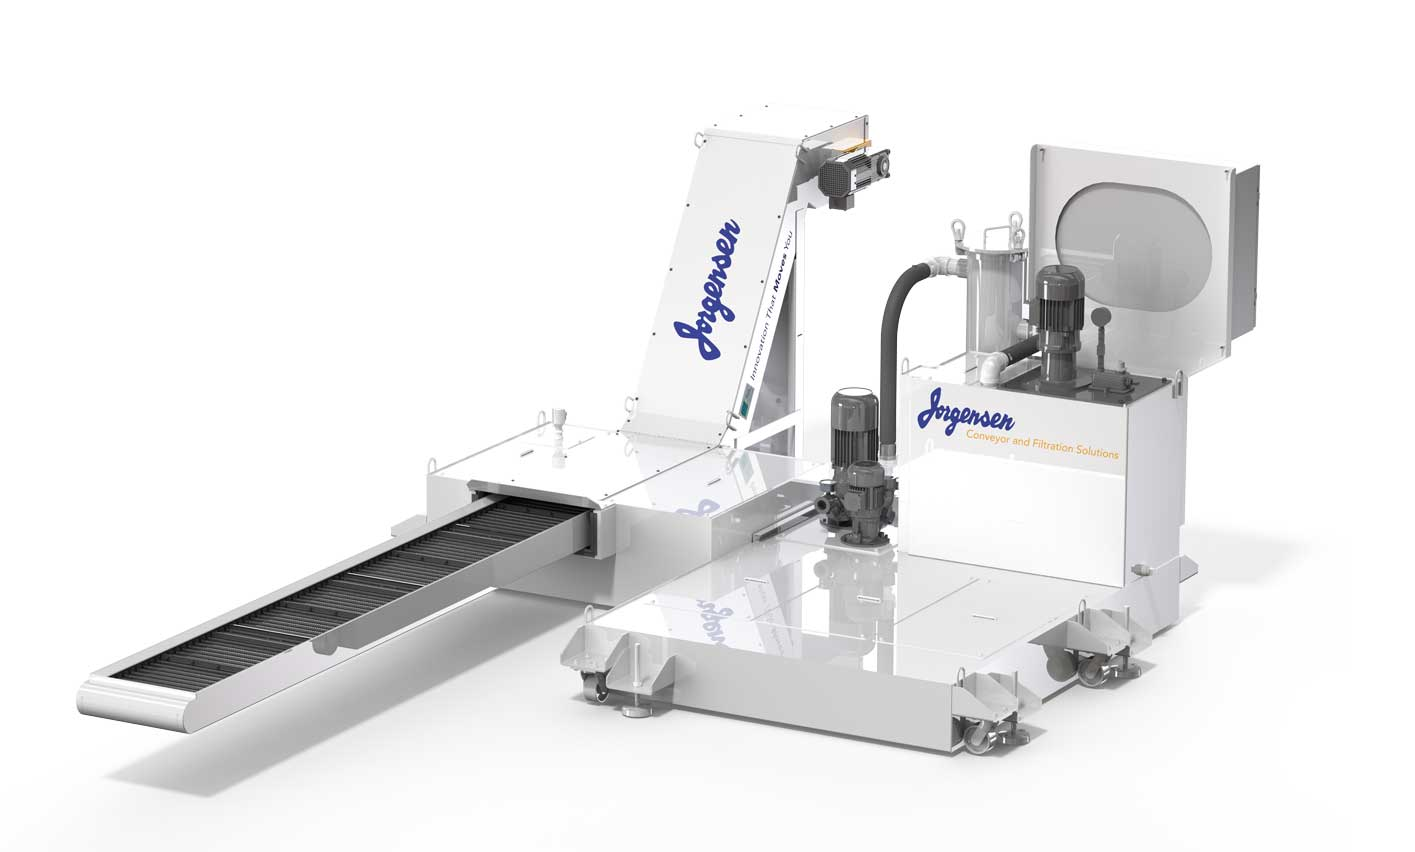 Chip conveyor with integrated coolant filtration